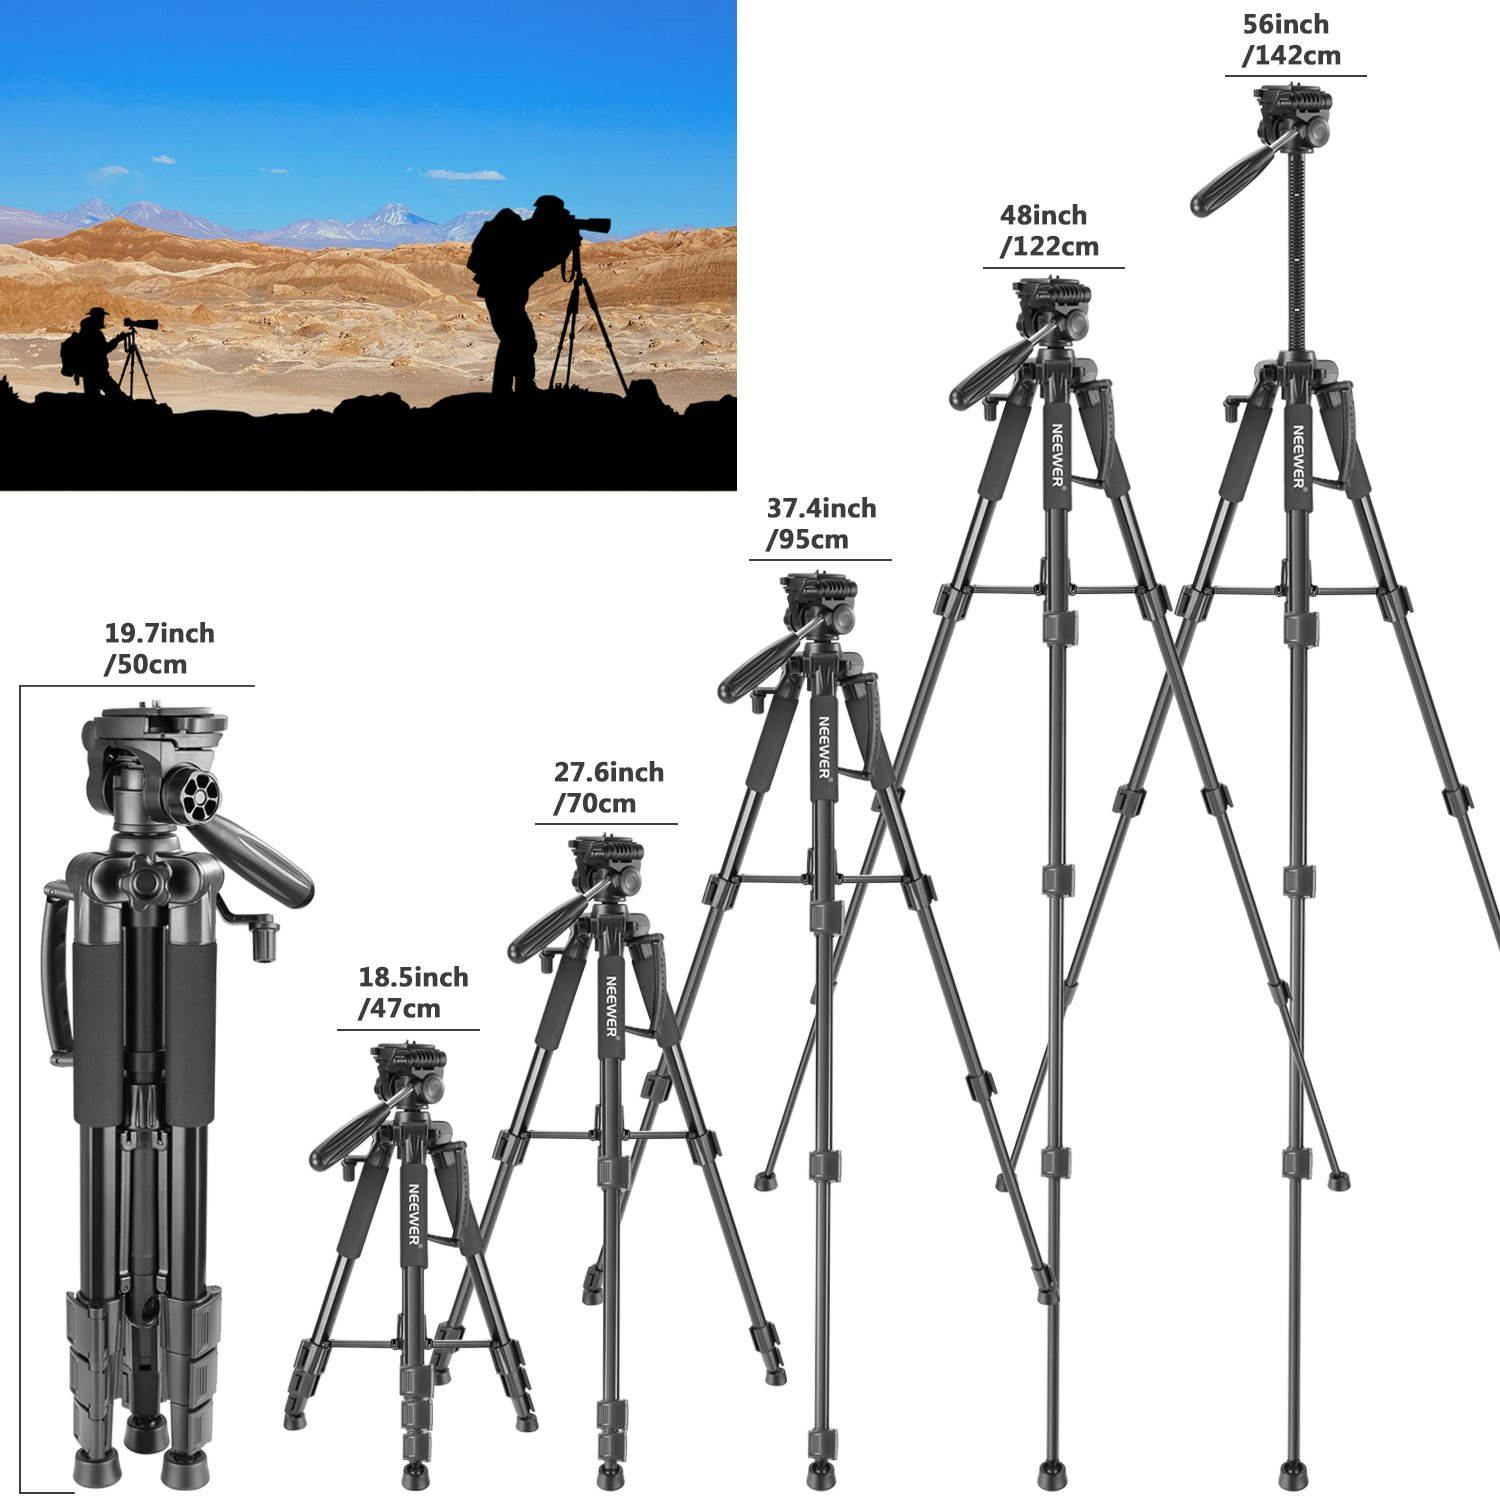 Neewer Travel Aluminum Camera Tripod 56 inches with 3-Way Swivel Pan Head and Smartphone Holder, Compatible with Canon Nikon DSLR Camera, DV Video Camcorder, iPhone and Android Smartphone (Black) by Neewer (Image #4)